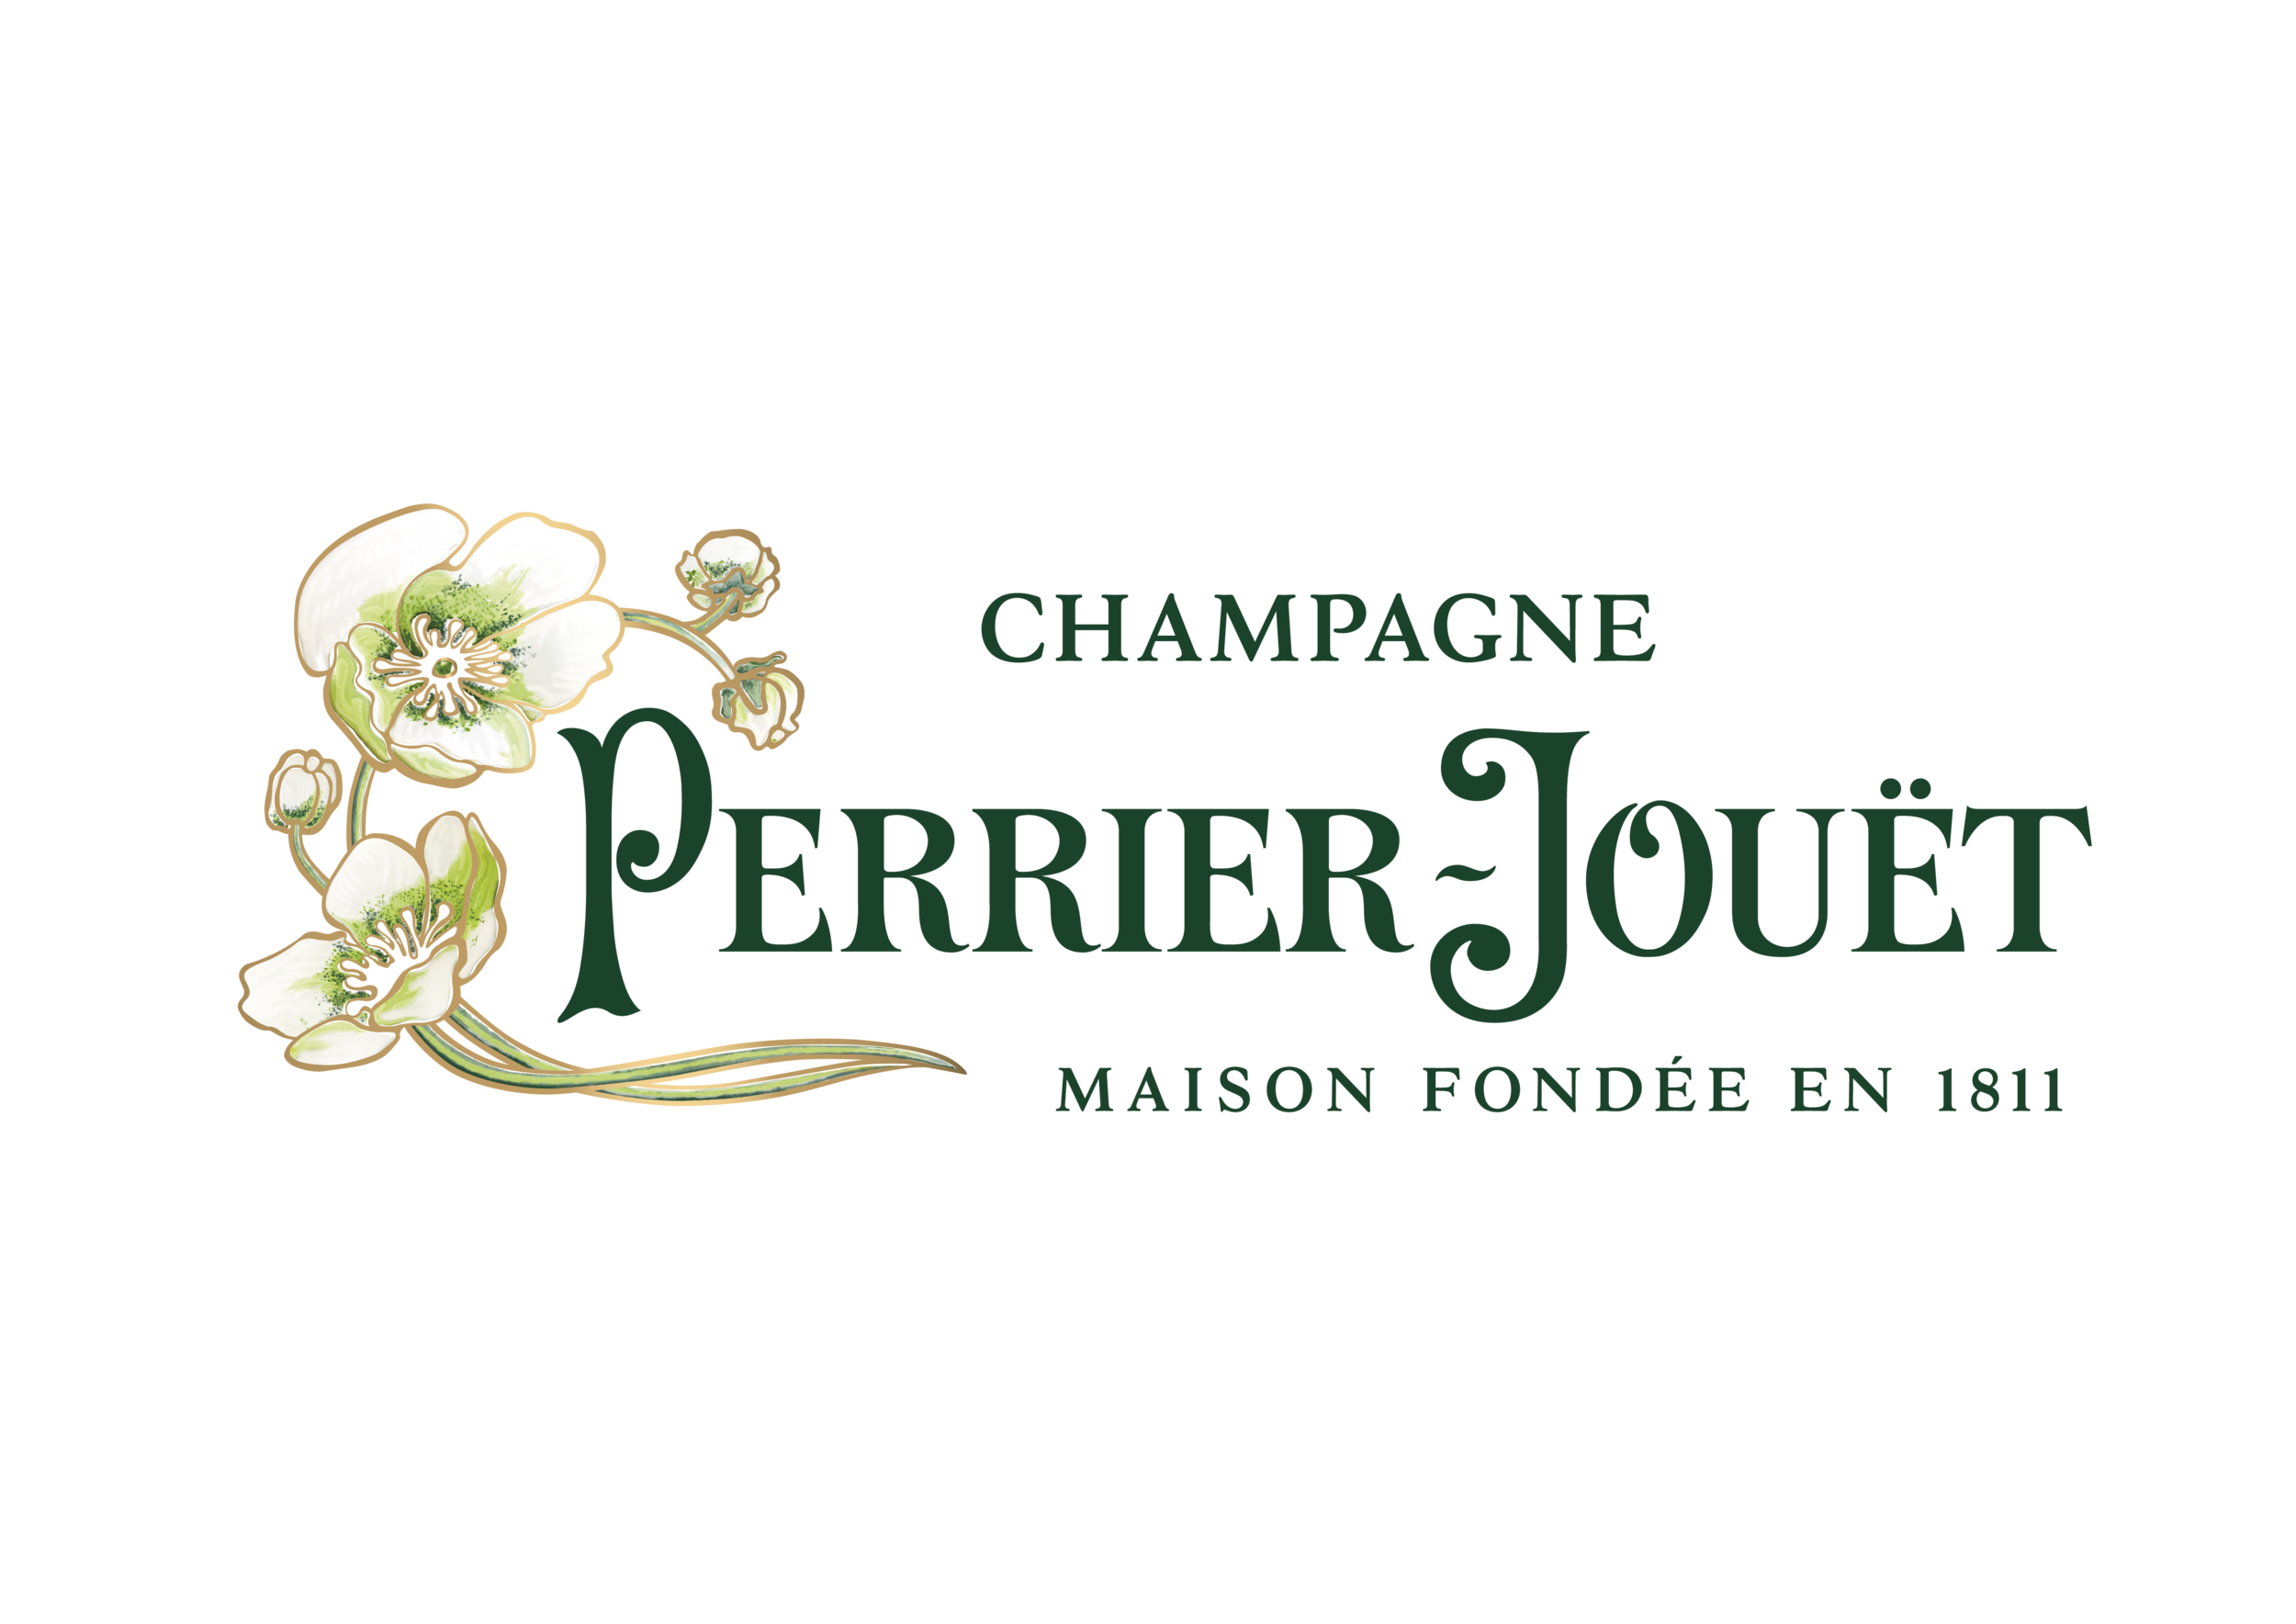 Five days of tastings make up VeritageMiami beginning October 5 and wrapping up October 9 with a Perrier-Jouët bubbly brunch